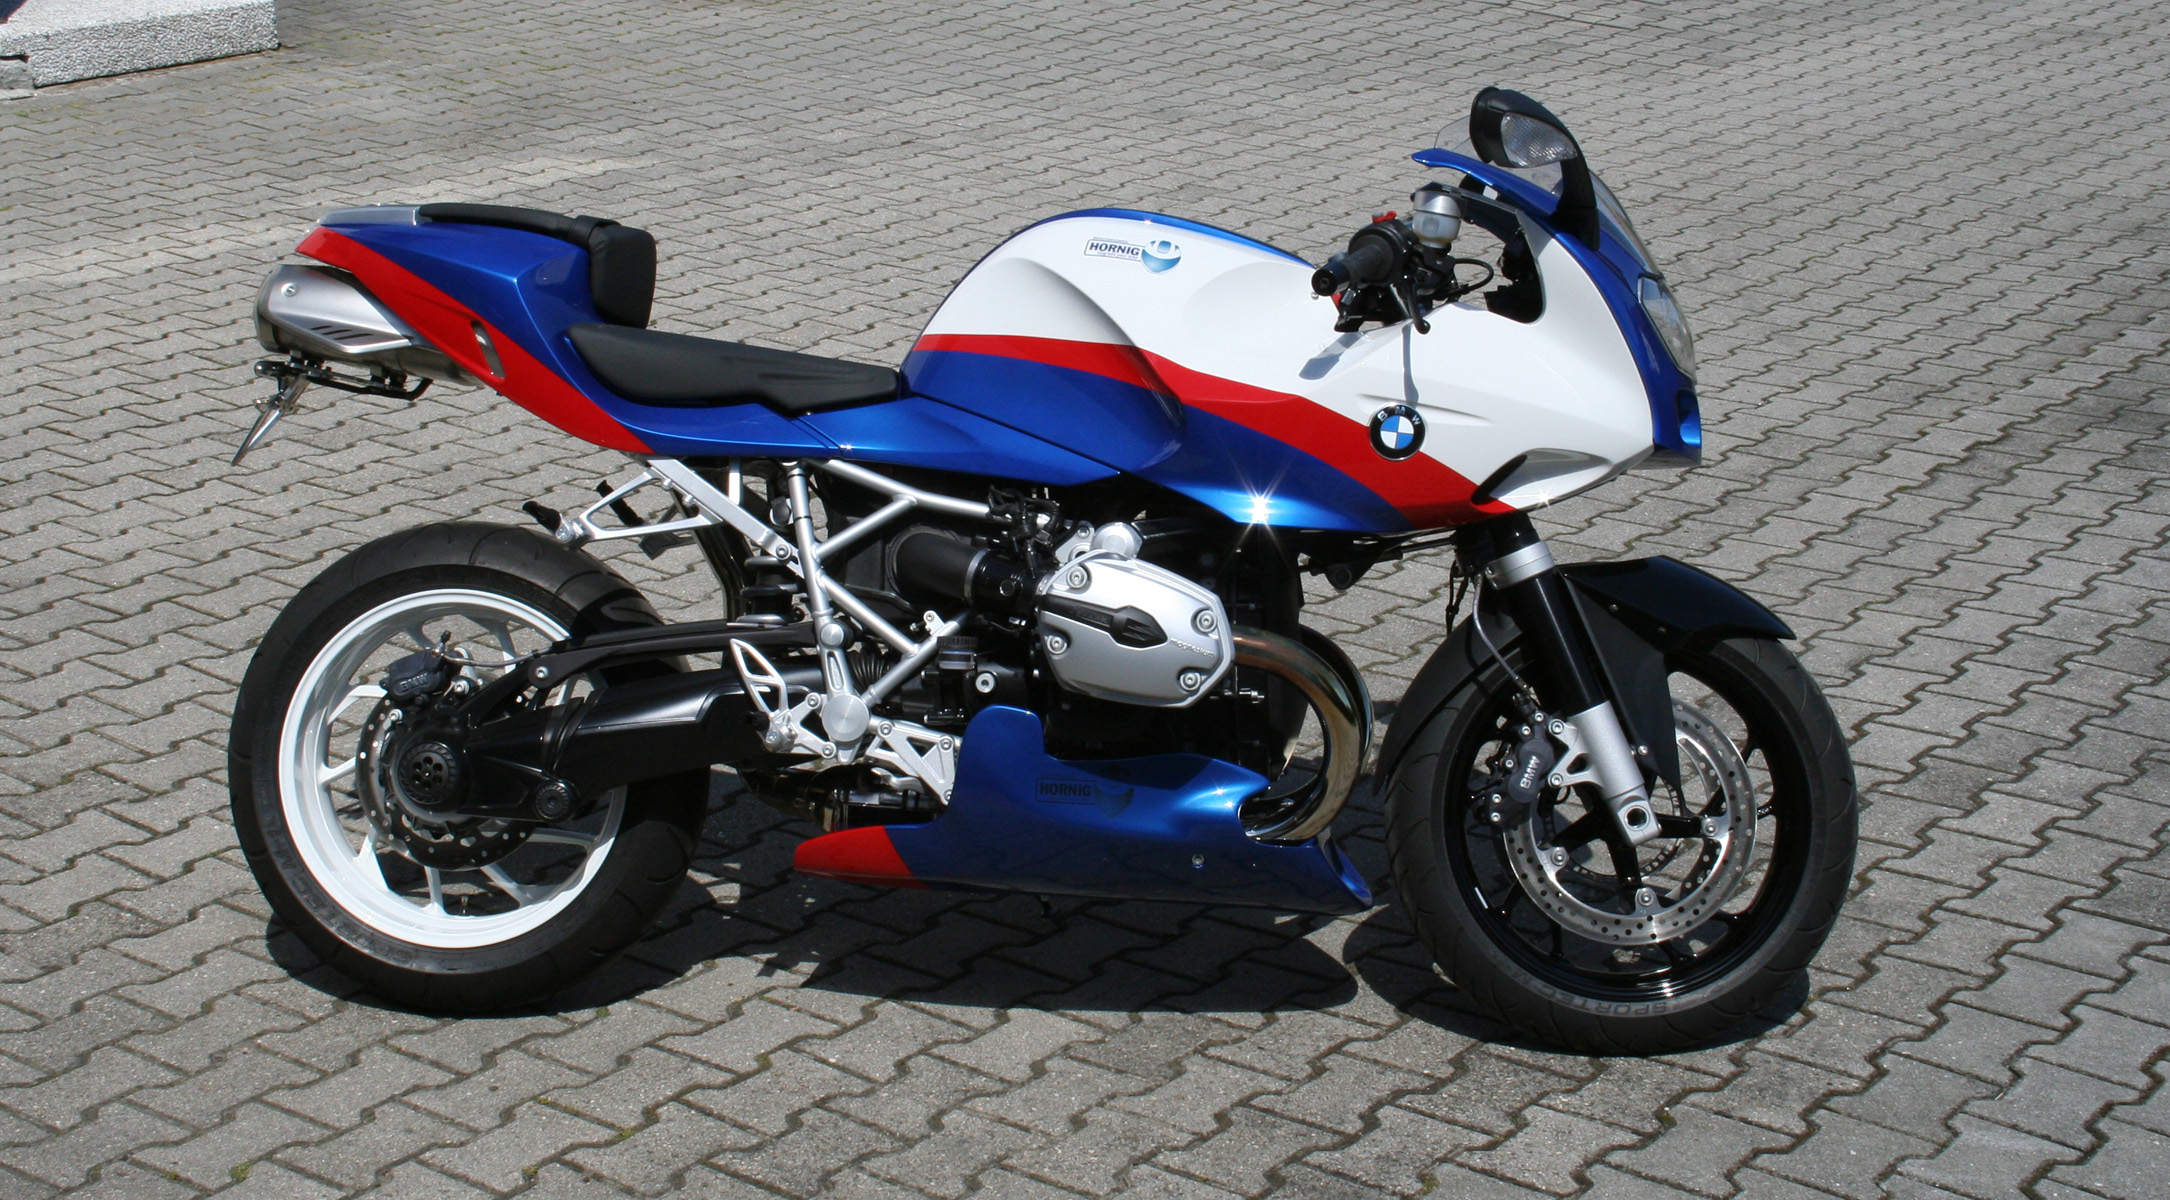 Bmw R1200s Conversion Pr Supersport Maschine In Powercup Colours Motorcycle Accessory Hornig